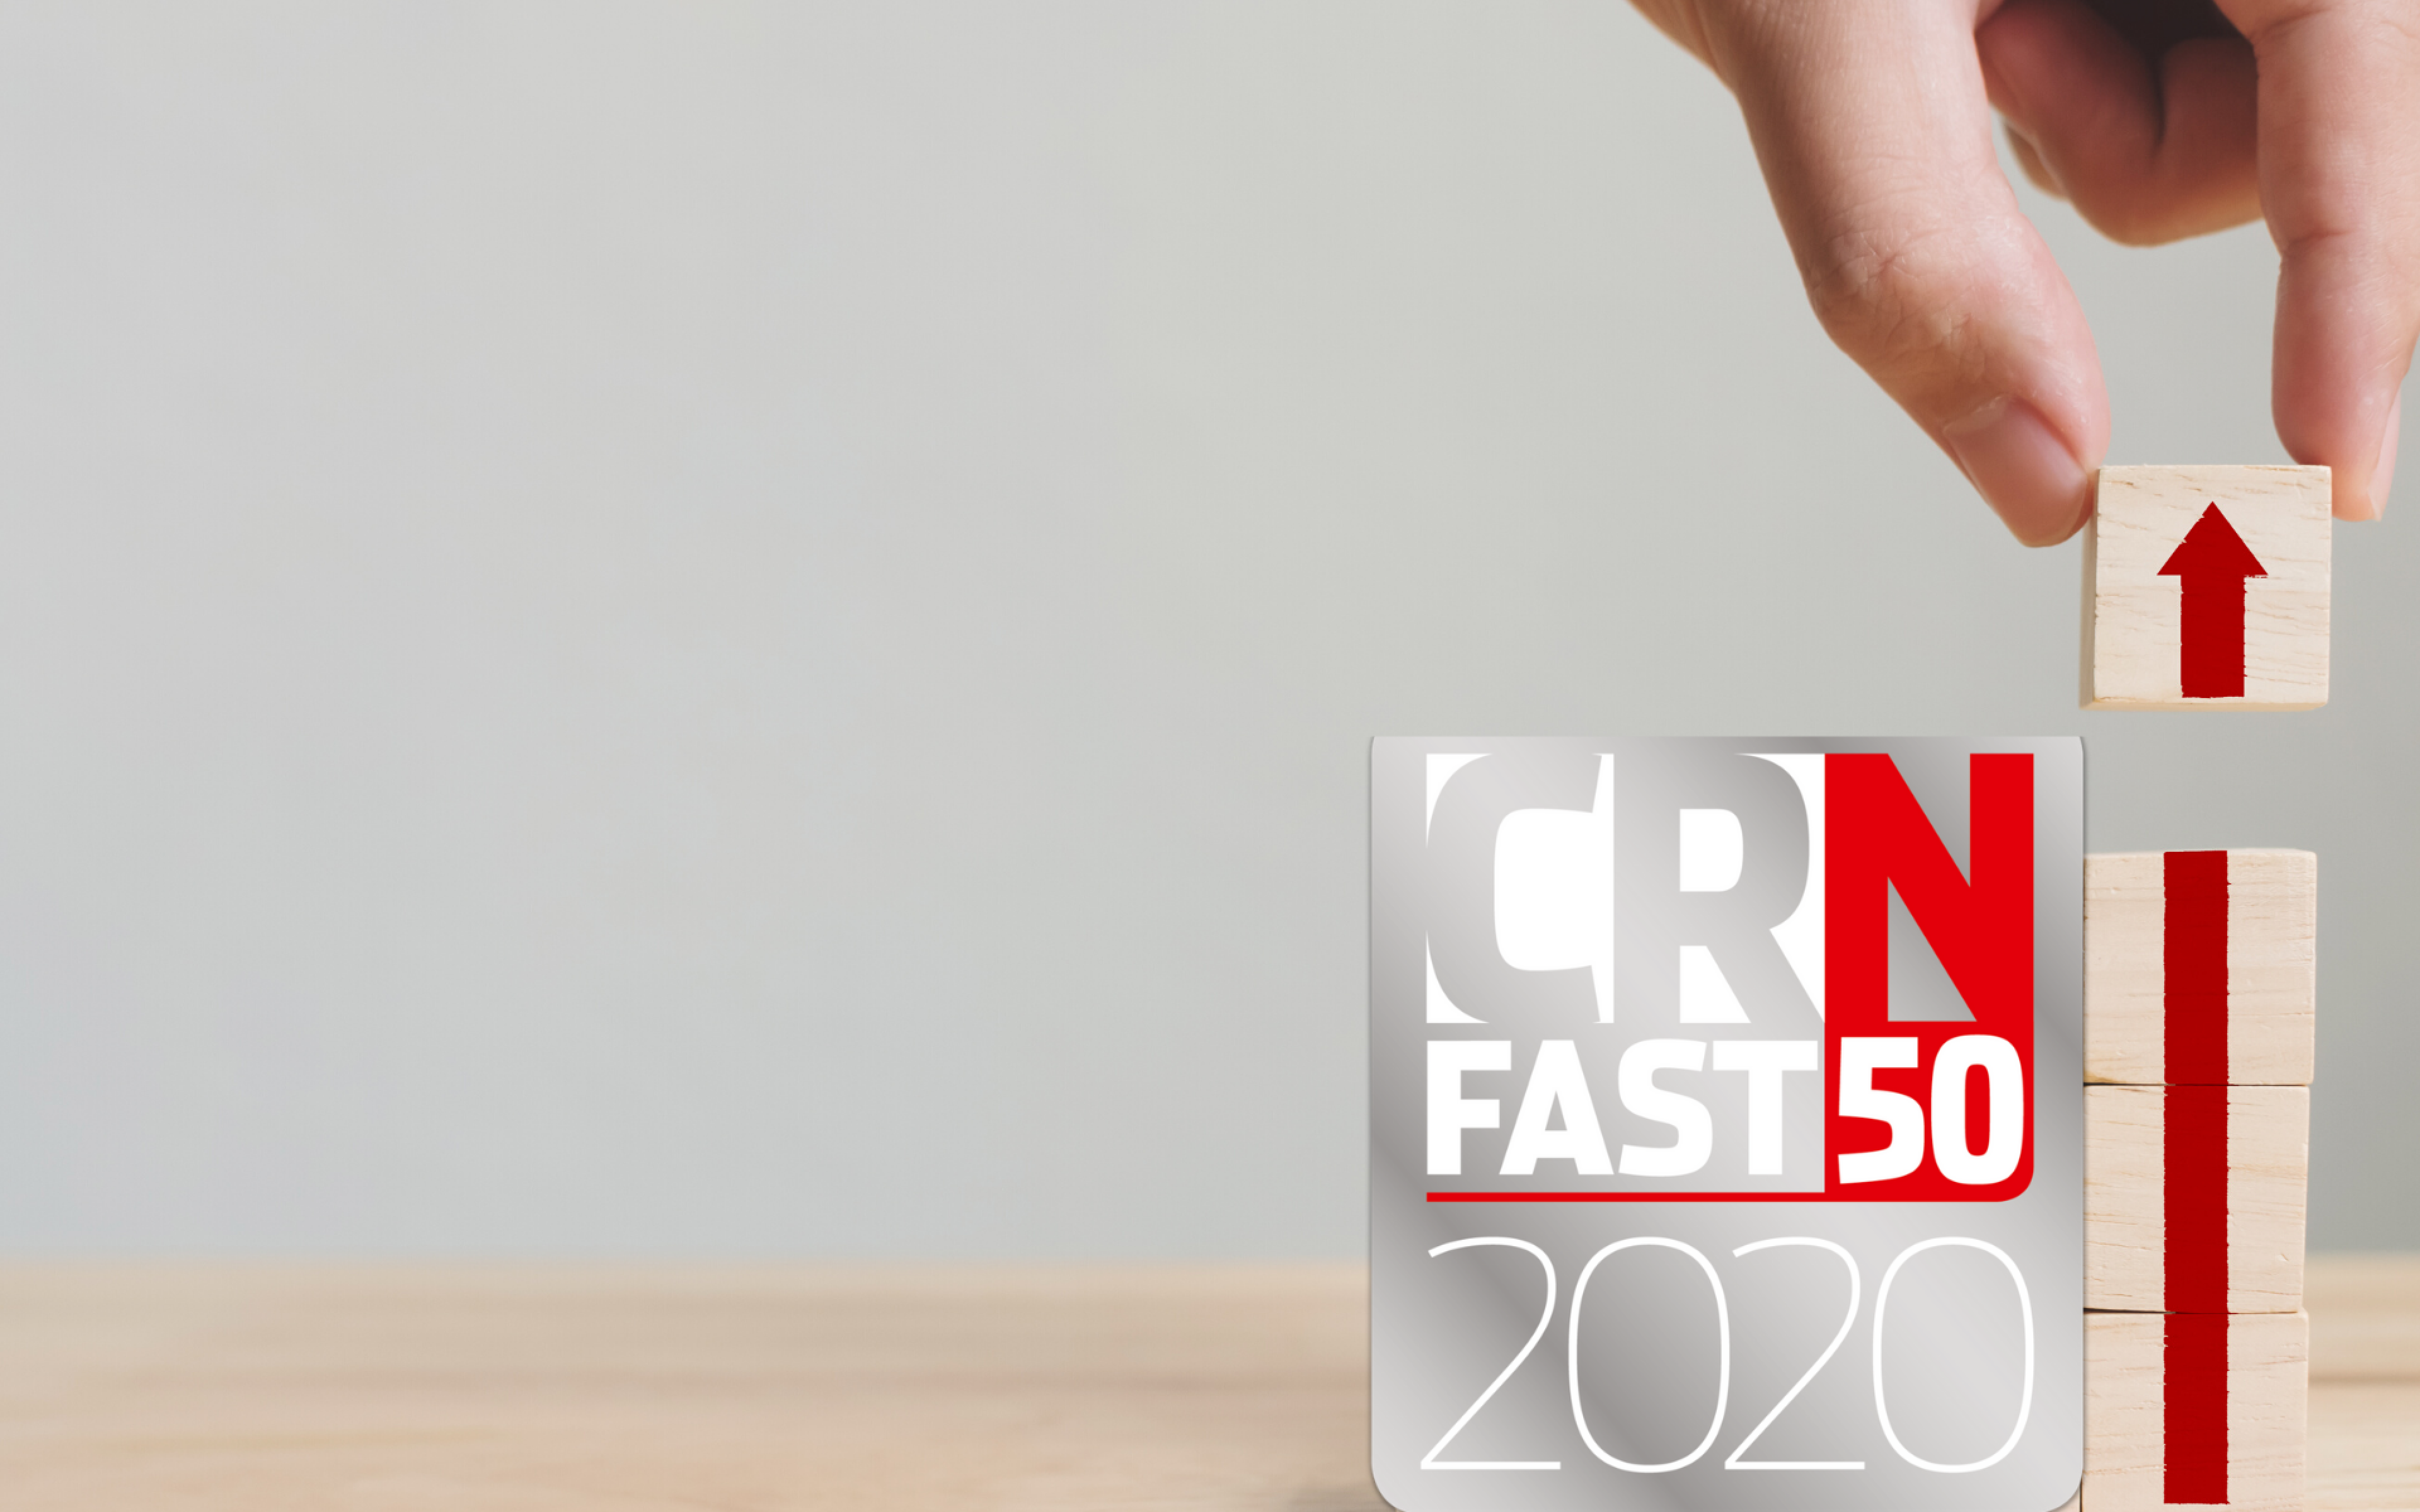 ICT Networks makes CRN Fast 50 & receives